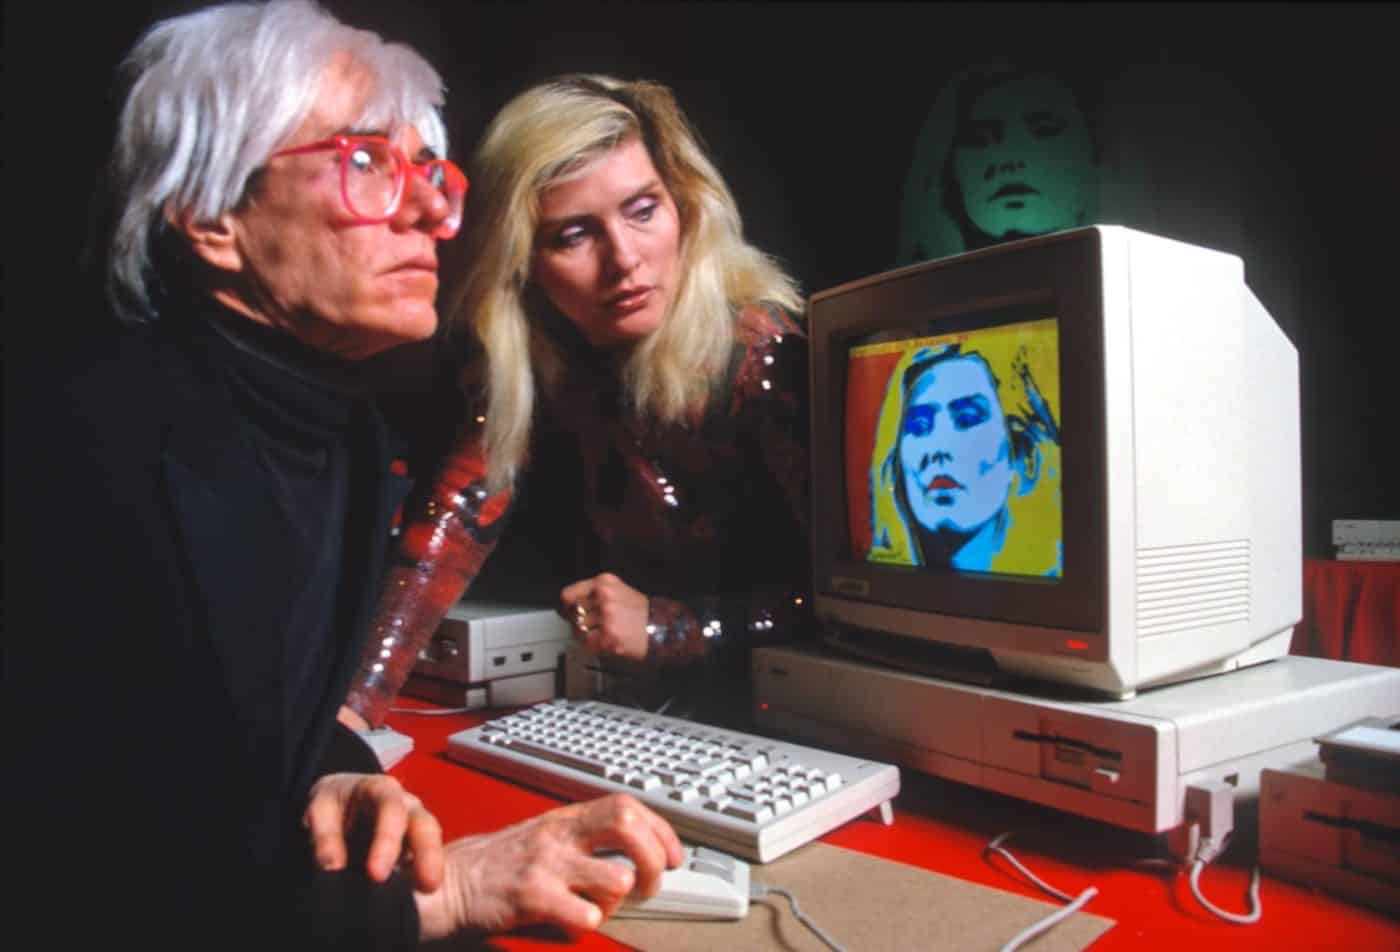 Andy Warhol with Blondie's Debbie Harry creating art on a mid-1980s Commodore personal computer